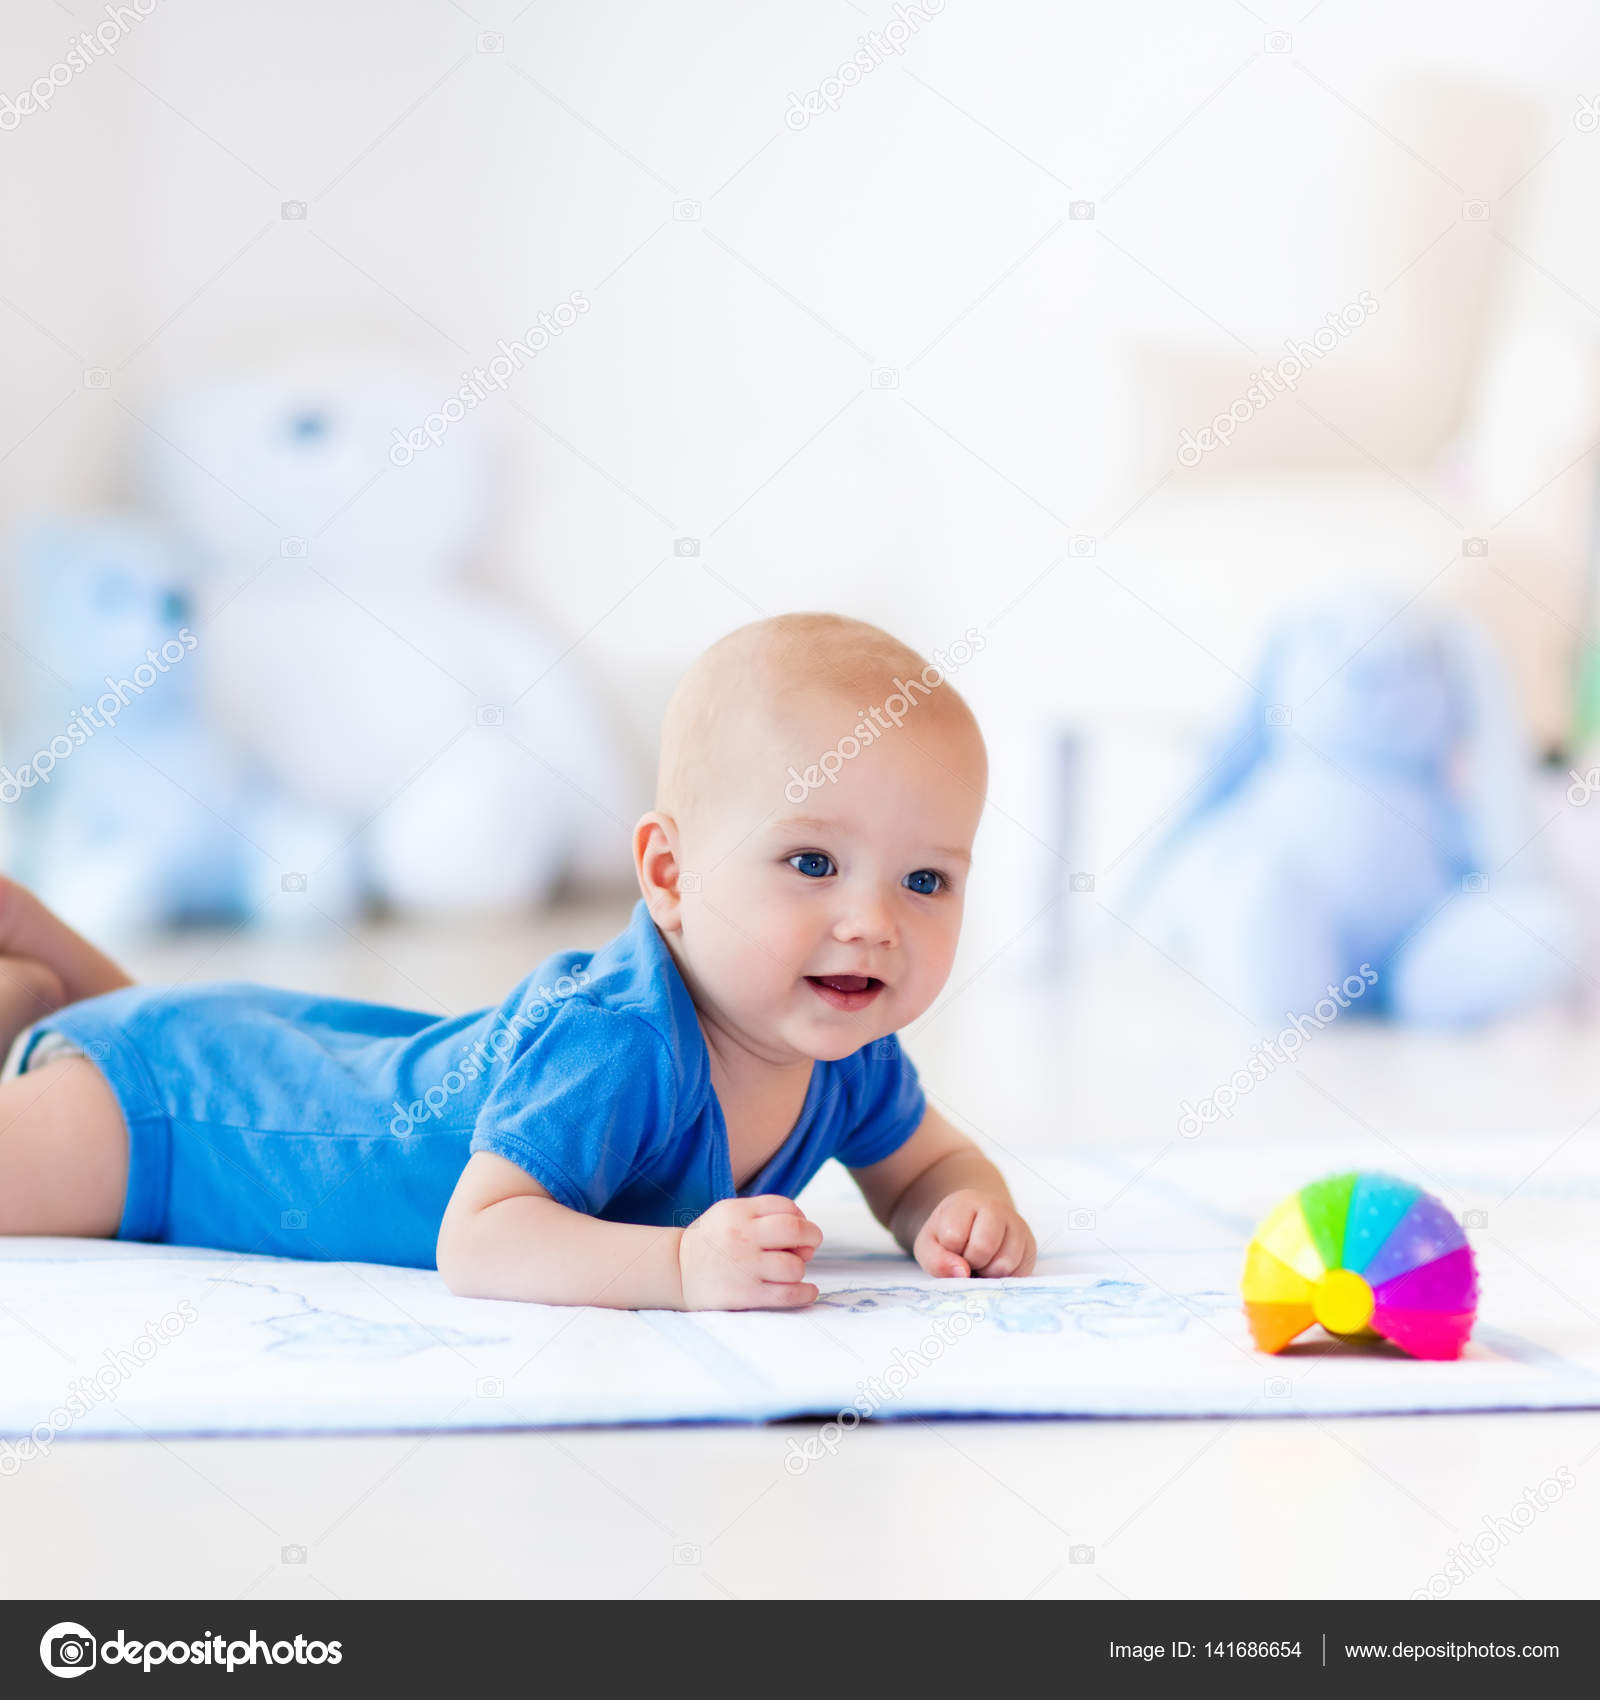 baby junge spielt mit spielzeug ball stockfoto. Black Bedroom Furniture Sets. Home Design Ideas